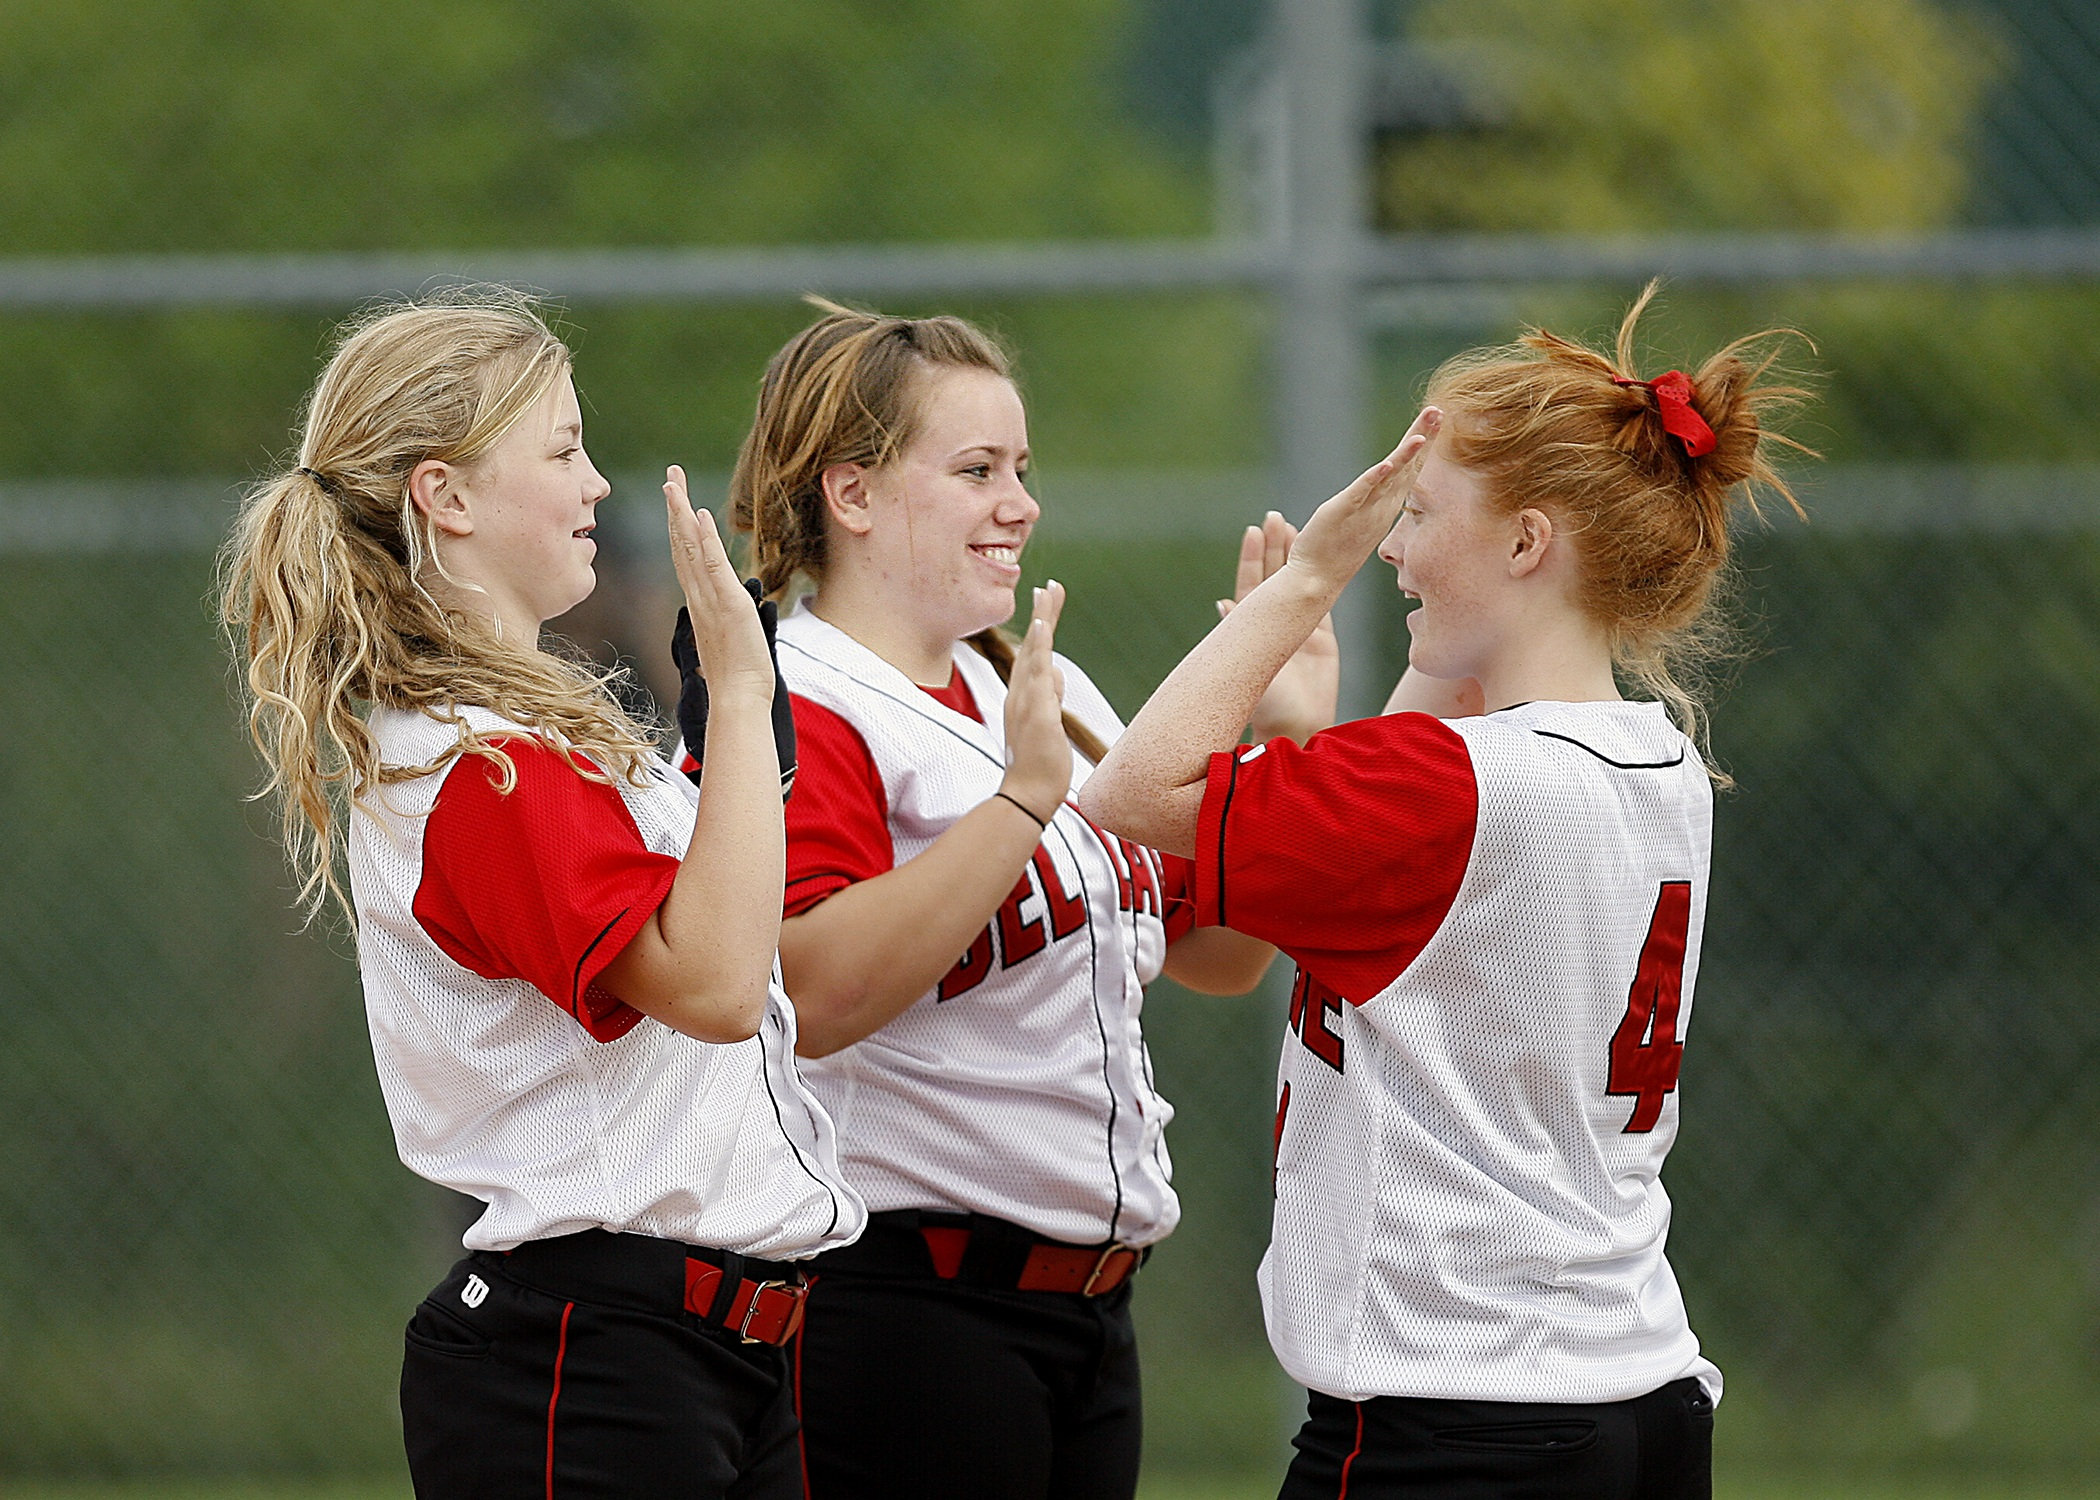 softball-girls-team-mates-happy-163465